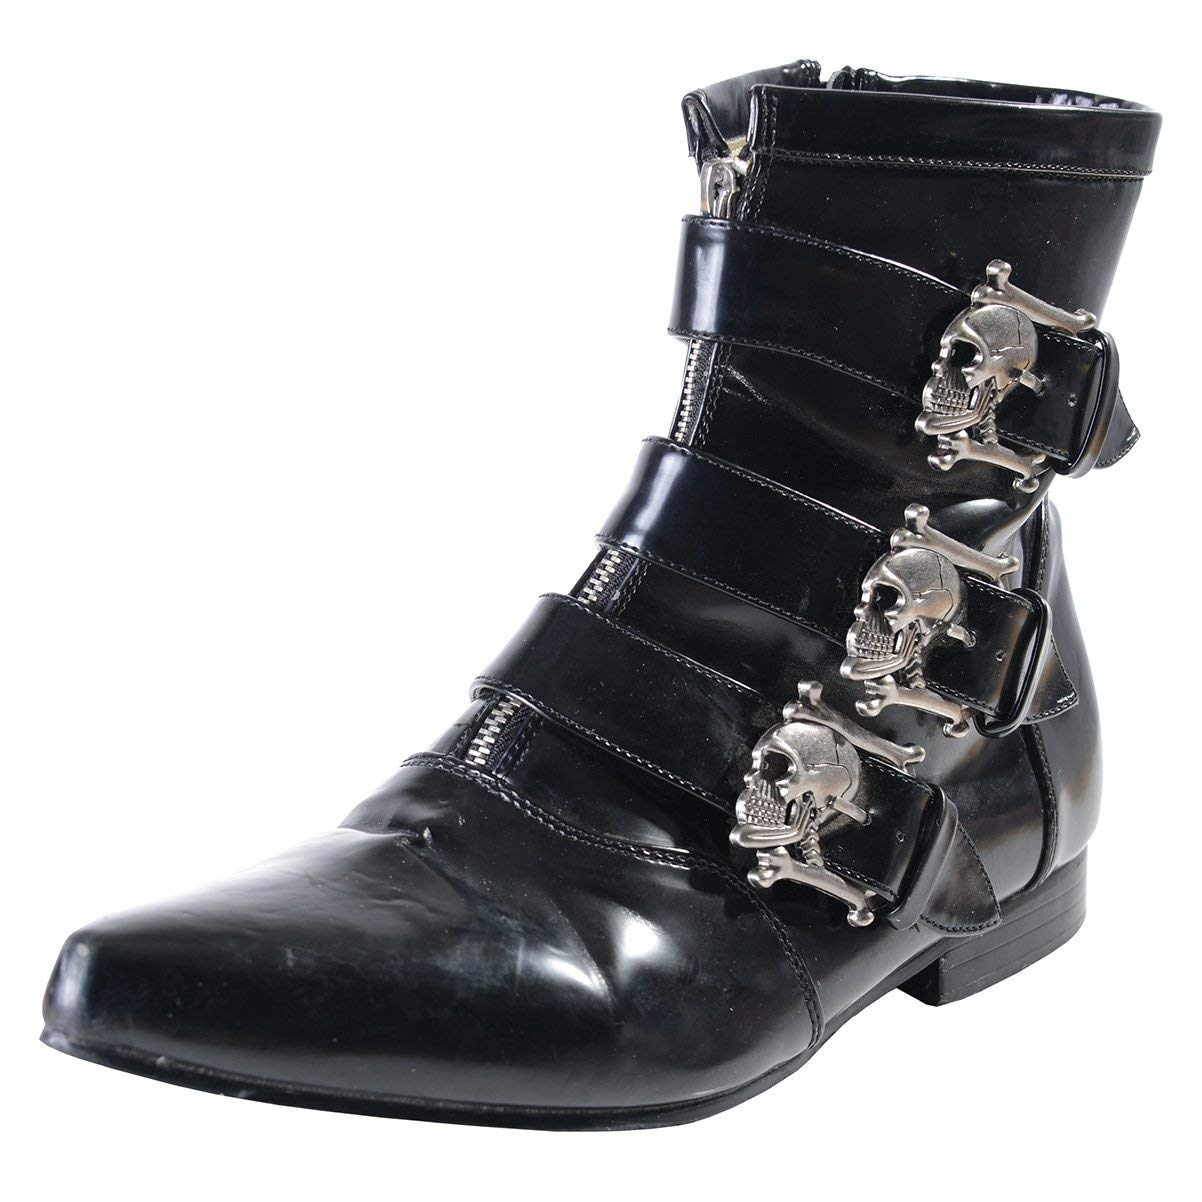 0e58a295da9 Get Quotations · Summitfashions Mens Ankle Boot Skull Buckles GOTH style  Black